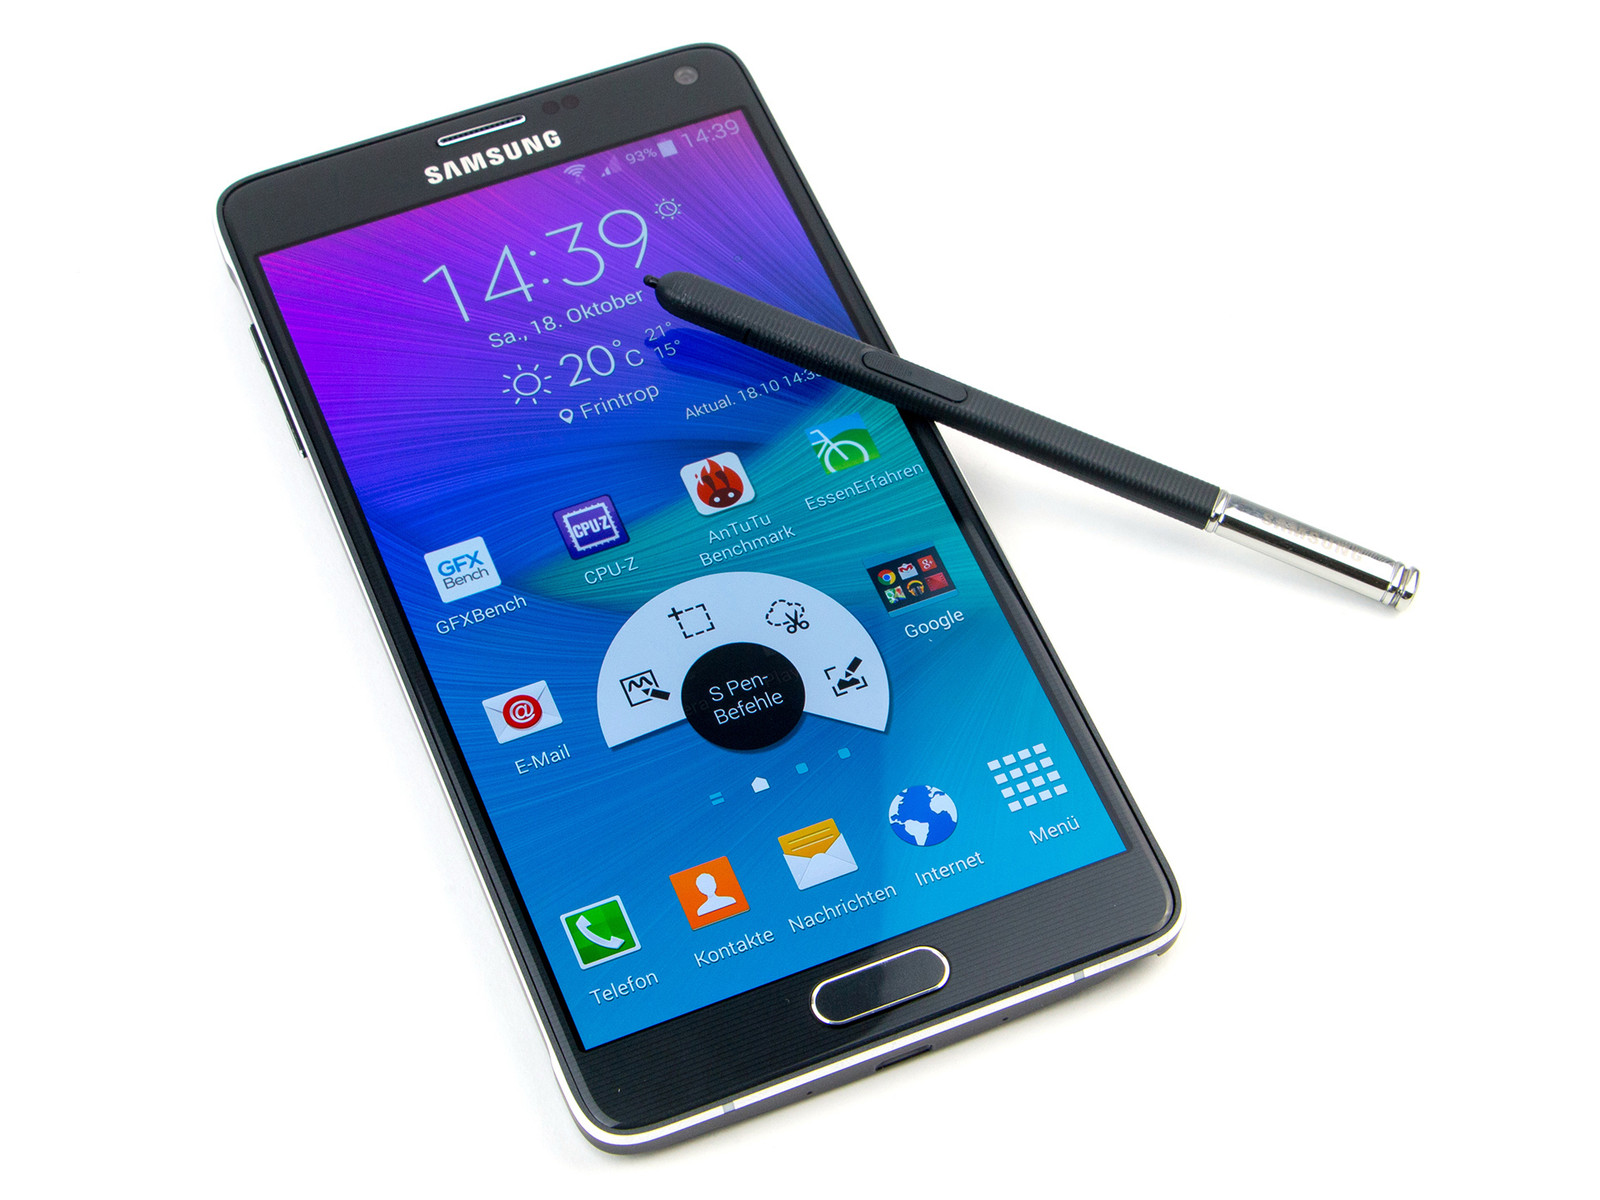 List of 3 Best Samsung Cell Phones: Galaxy S6 Edge, Galaxy Note 4 and Galaxy S6 Active